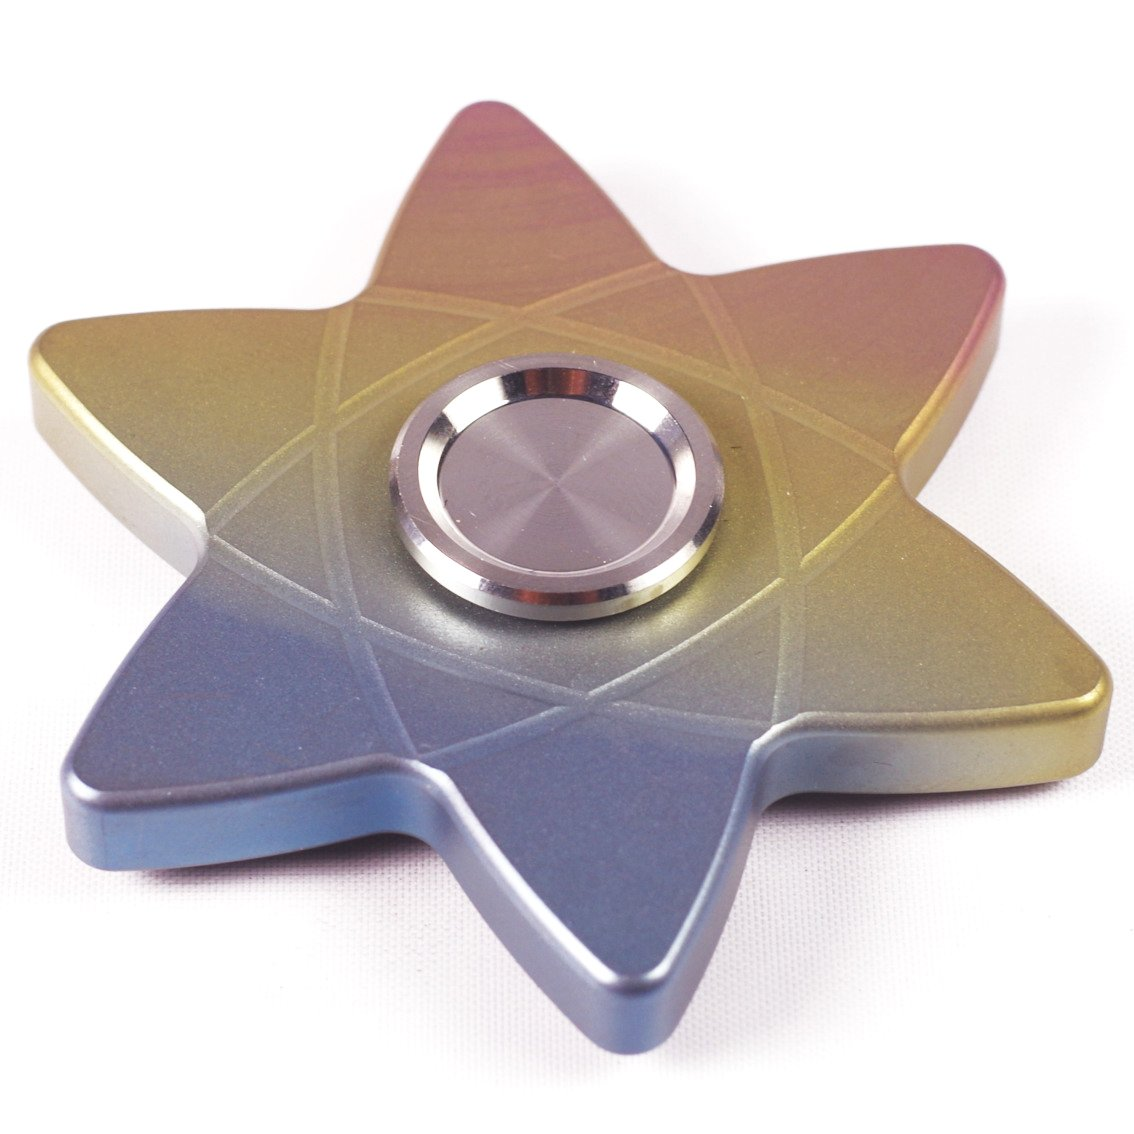 FREELOVE Rainbow Whirlwind Fidget Spinner,Titanium Alloy,Stainless Steel Finger Cover with British Tungsten Steel Beads R188 Bearing,No Edges/Corners No Hurt,Precise EDC Toy (Hexagonal Rainbow) by FREELOVE